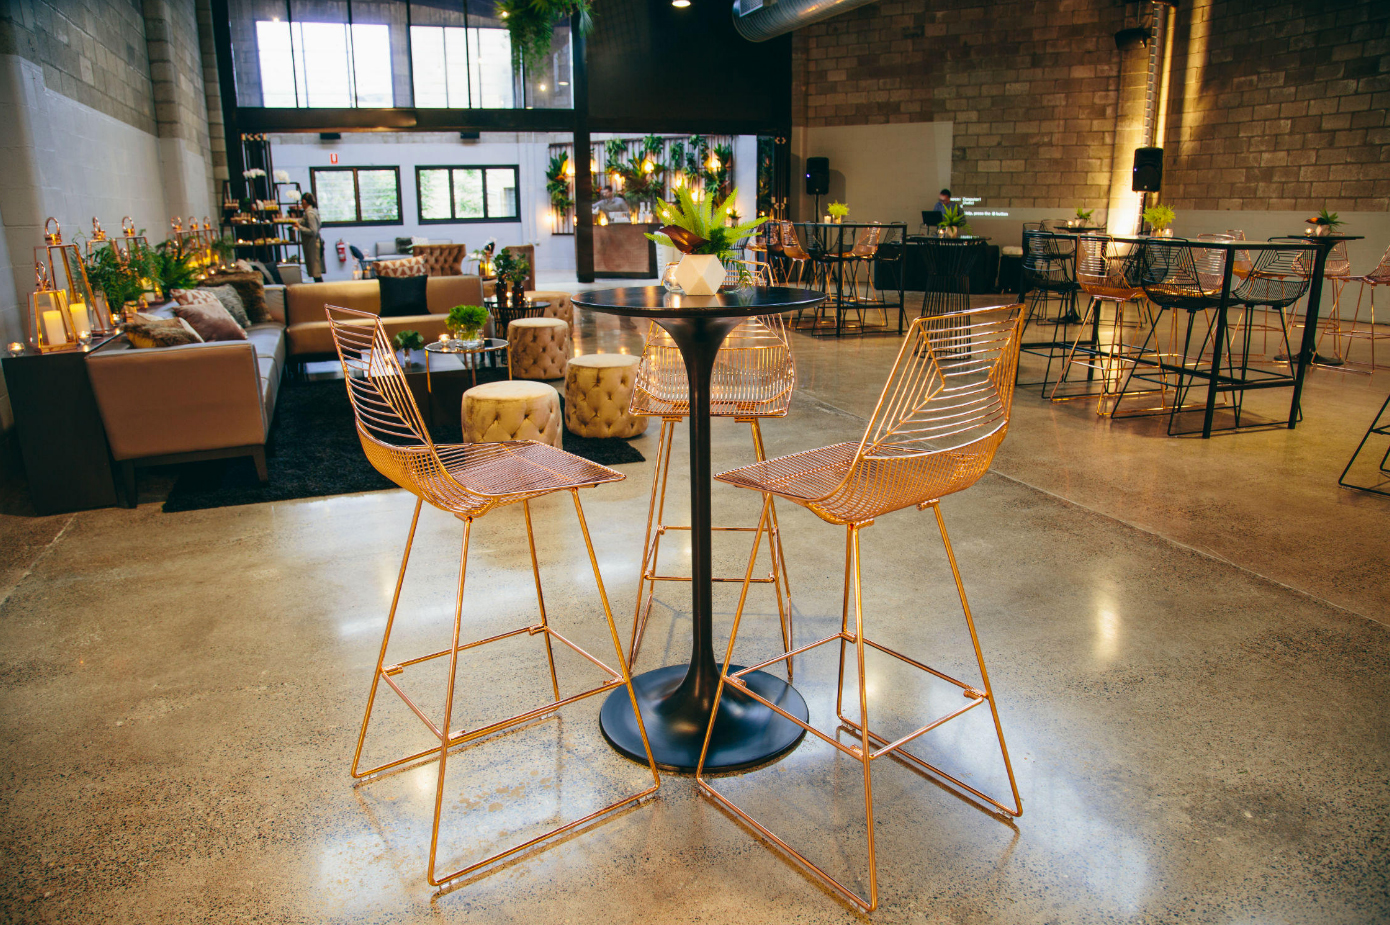 Illusion Chair Copper Wire Chair Valiant Hire - Copper & Gold Wedding Styling Inspiration - Yesterday Creative Letterpress - Blog